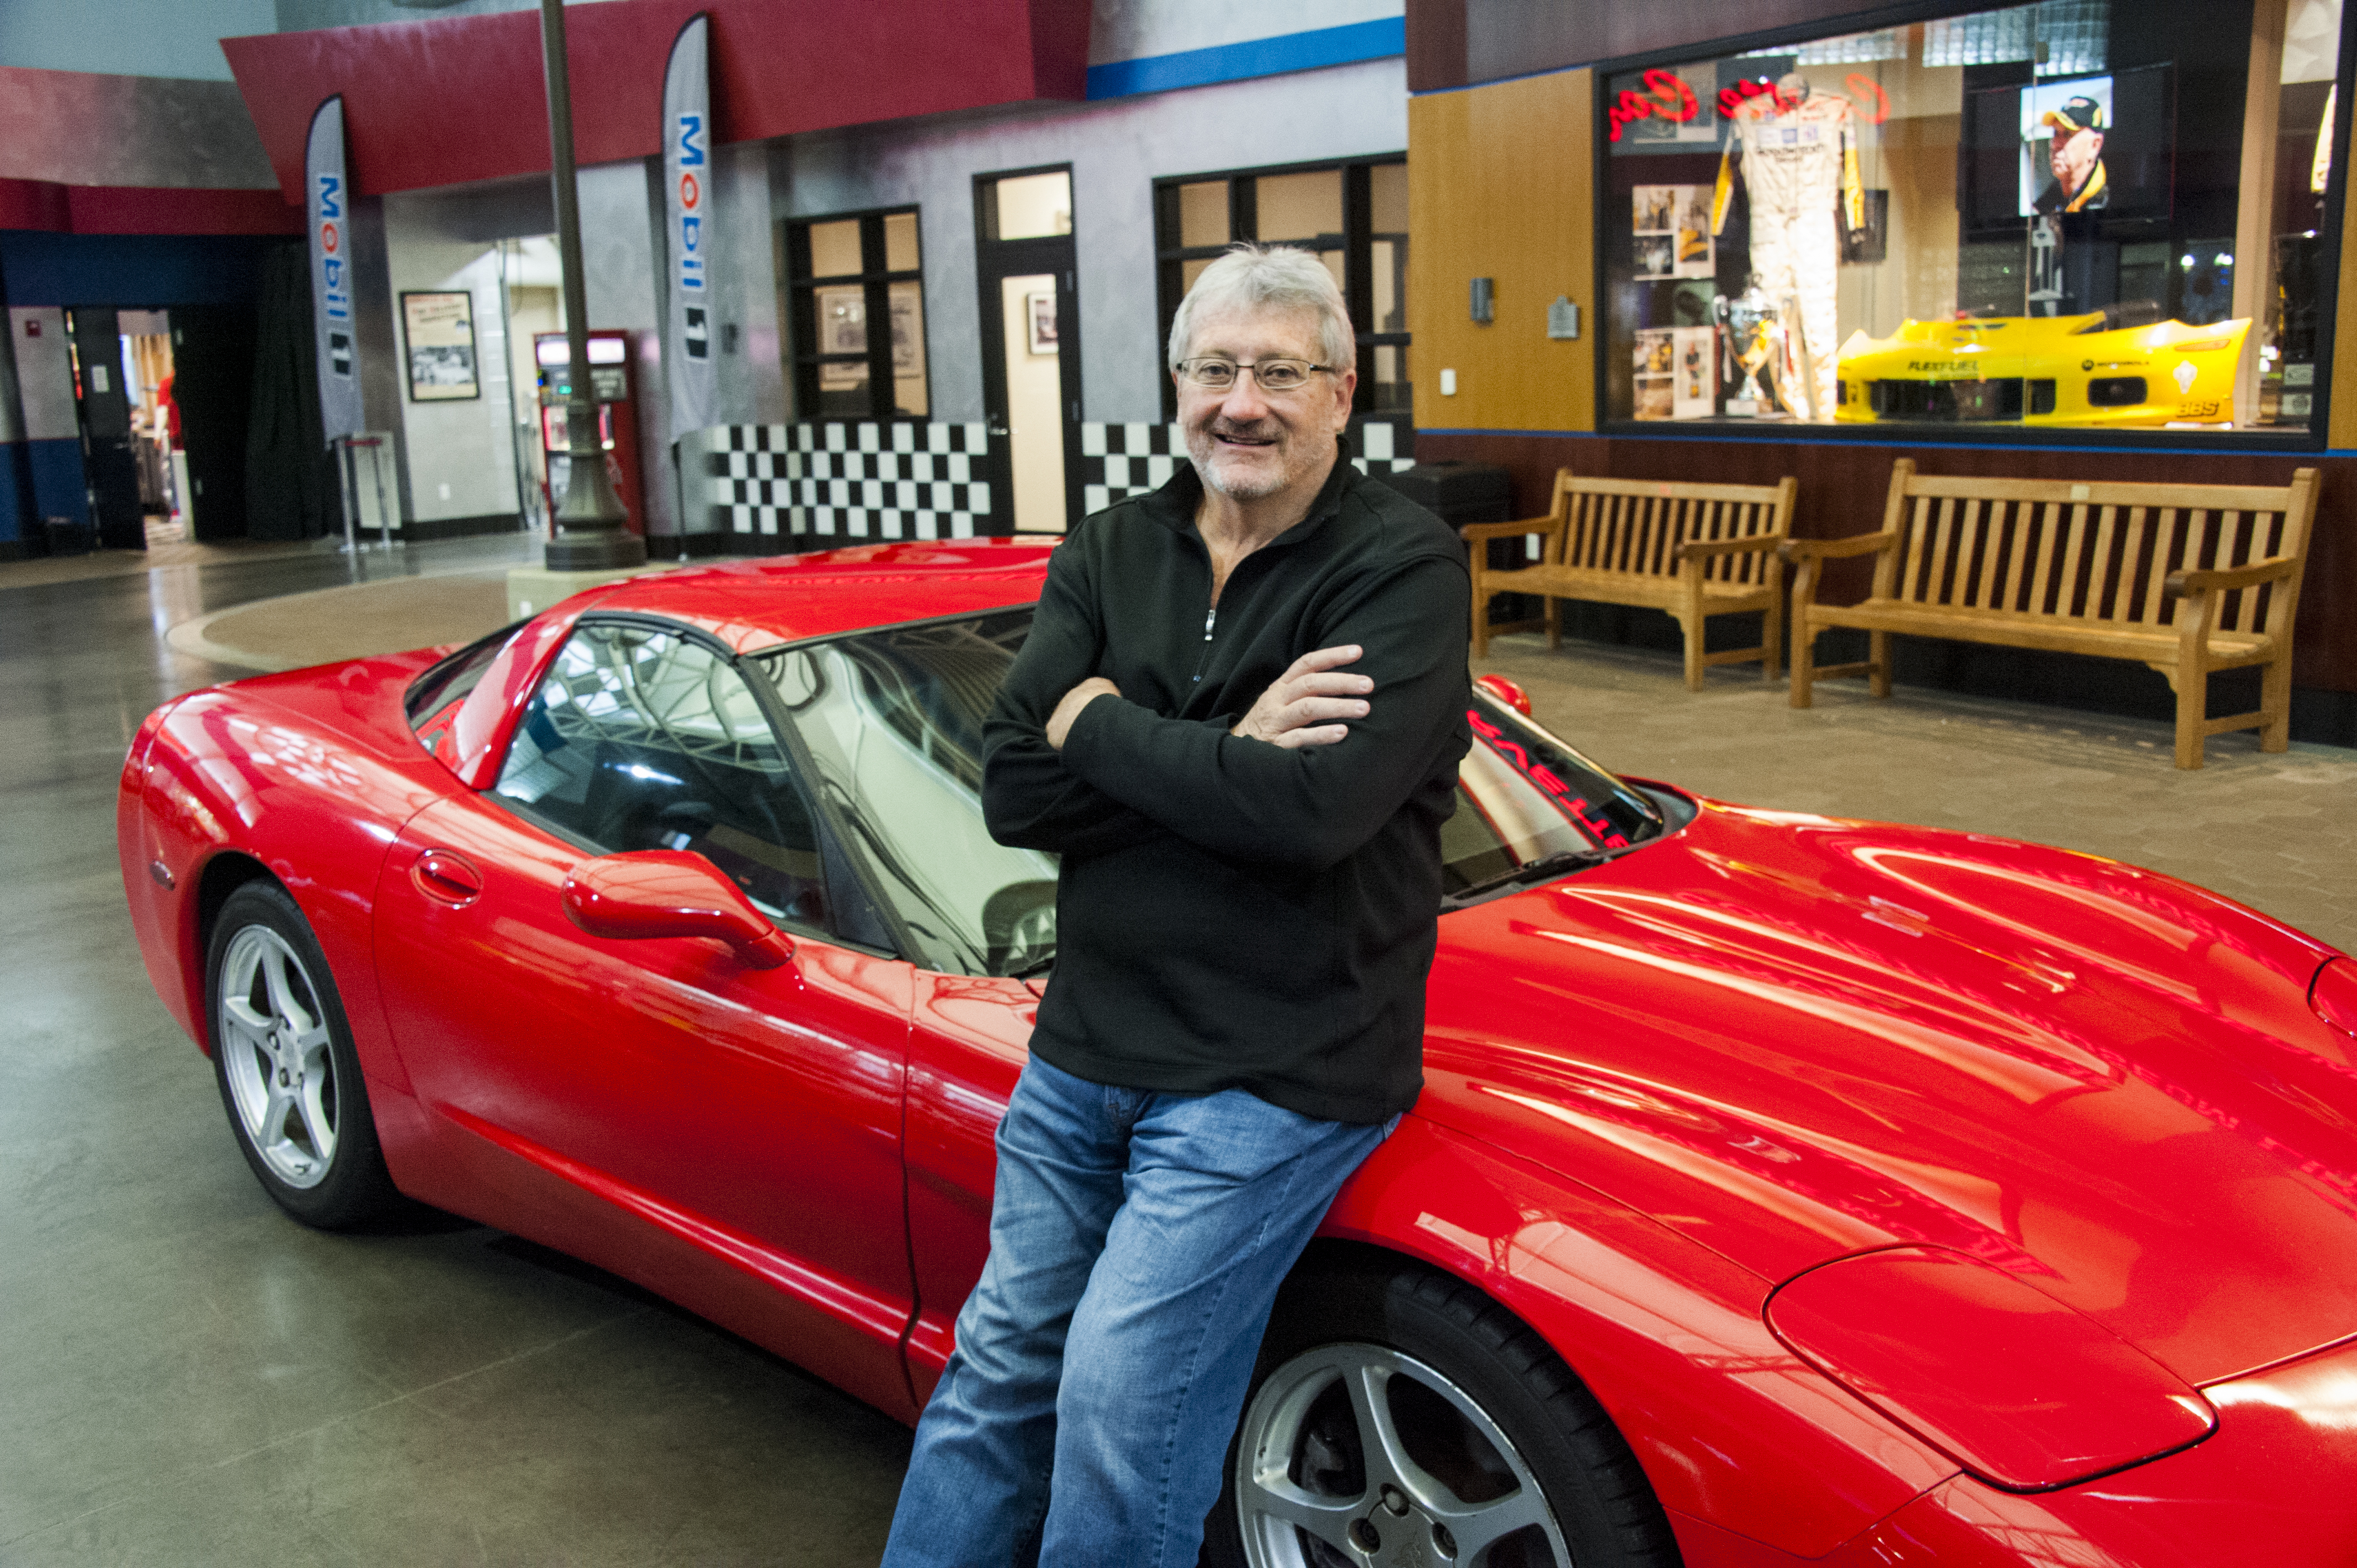 2000 High Mileage Corvette Donation